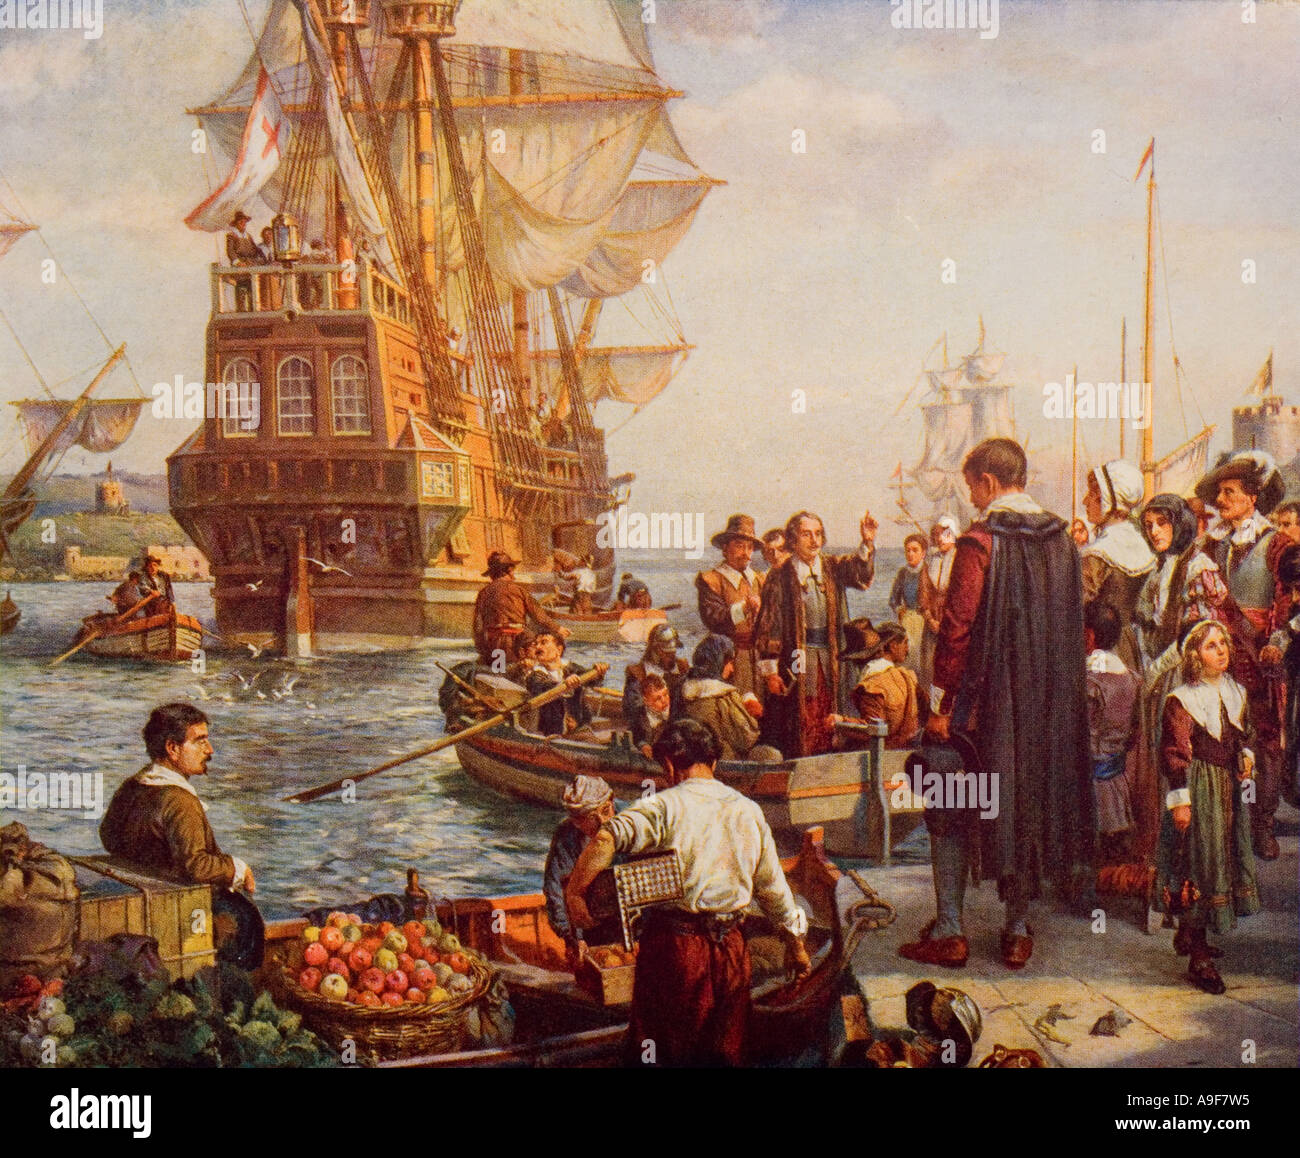 The departure of the Pilgrim Fathers from Plymouth in 1620 - Stock Image